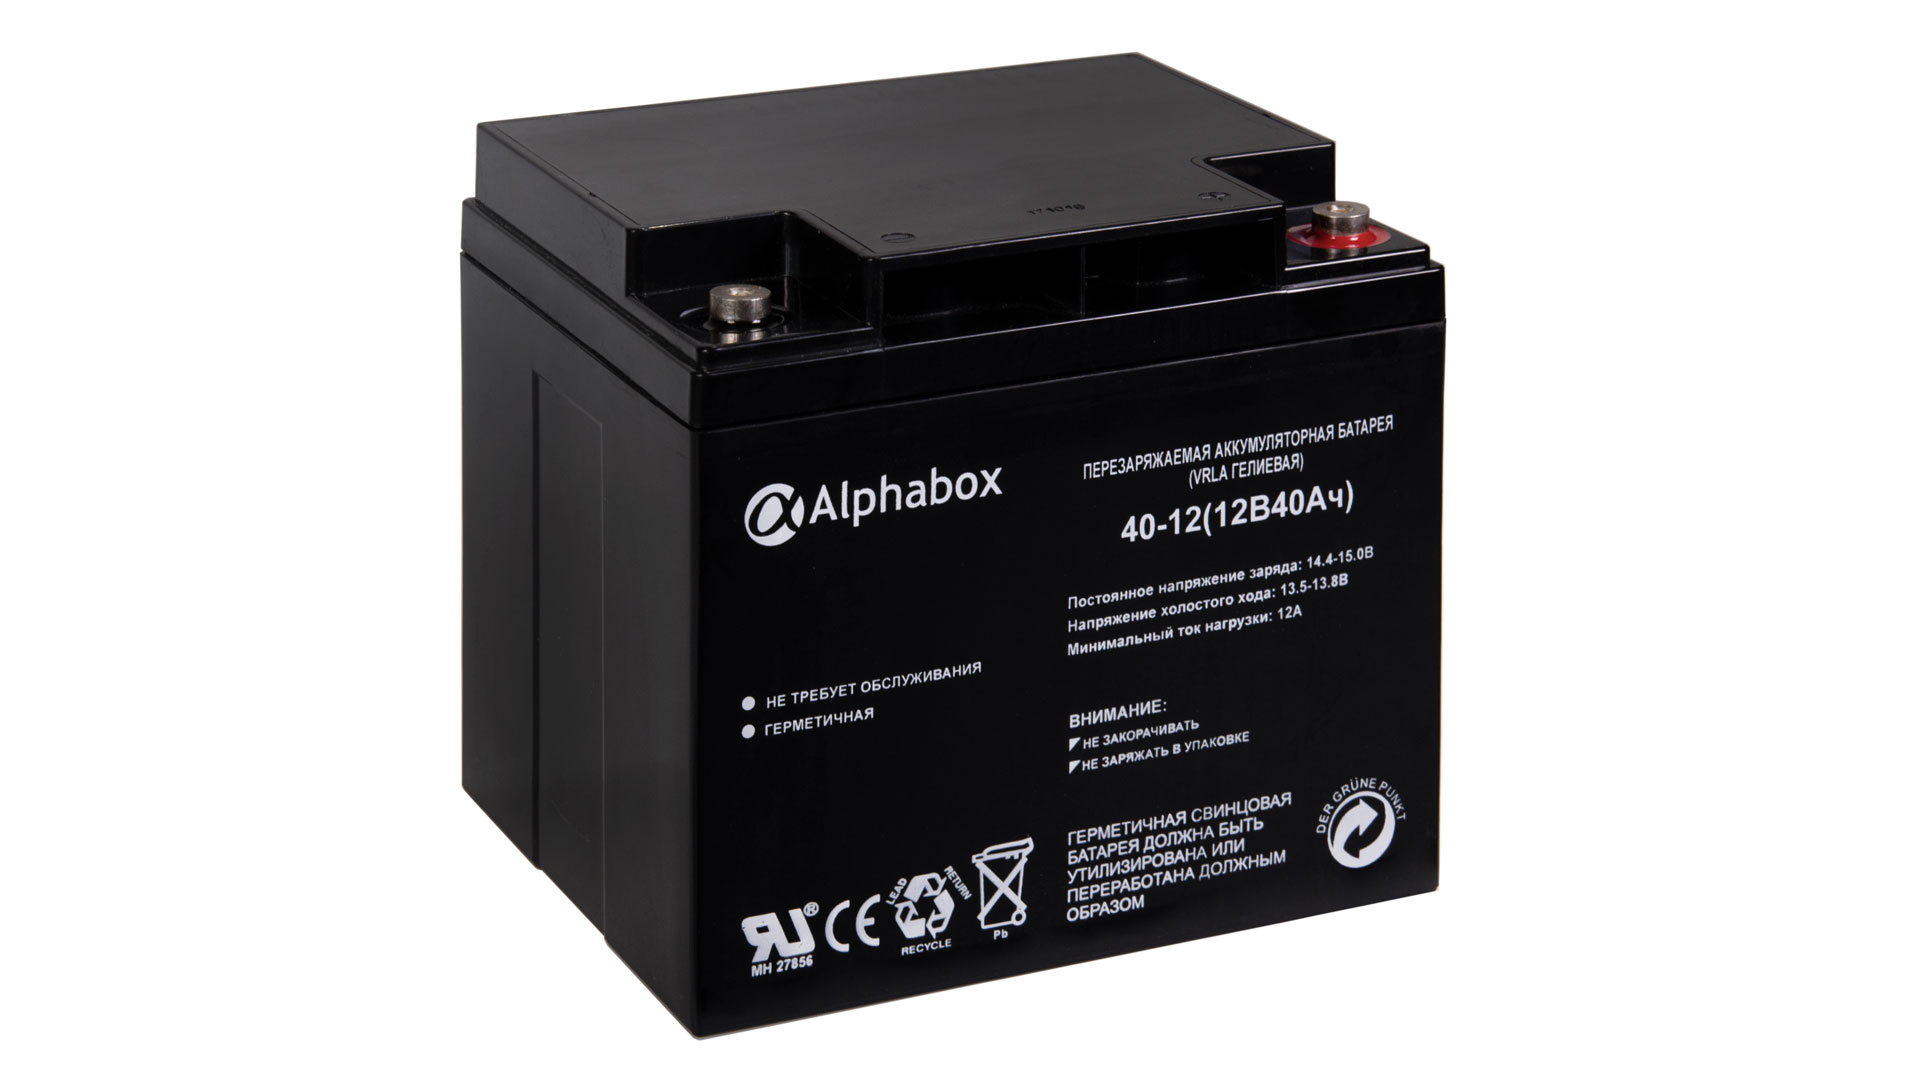 GSLAB Alphabox VRLA Battery 12V/40Ah